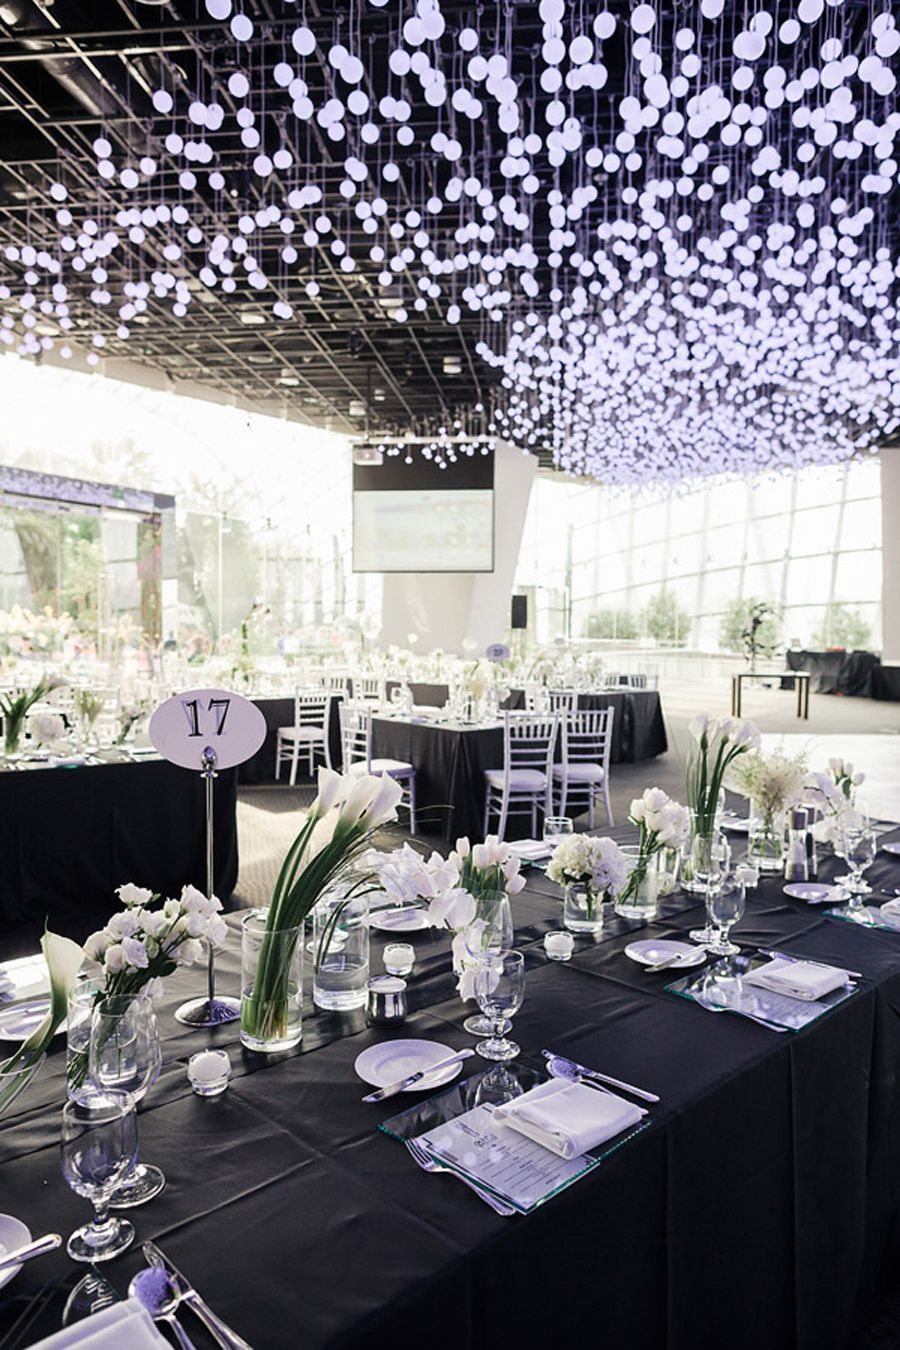 terry and guozis architecture inspired wedding at flower field hall - Garden By The Bay Flower Field Hall